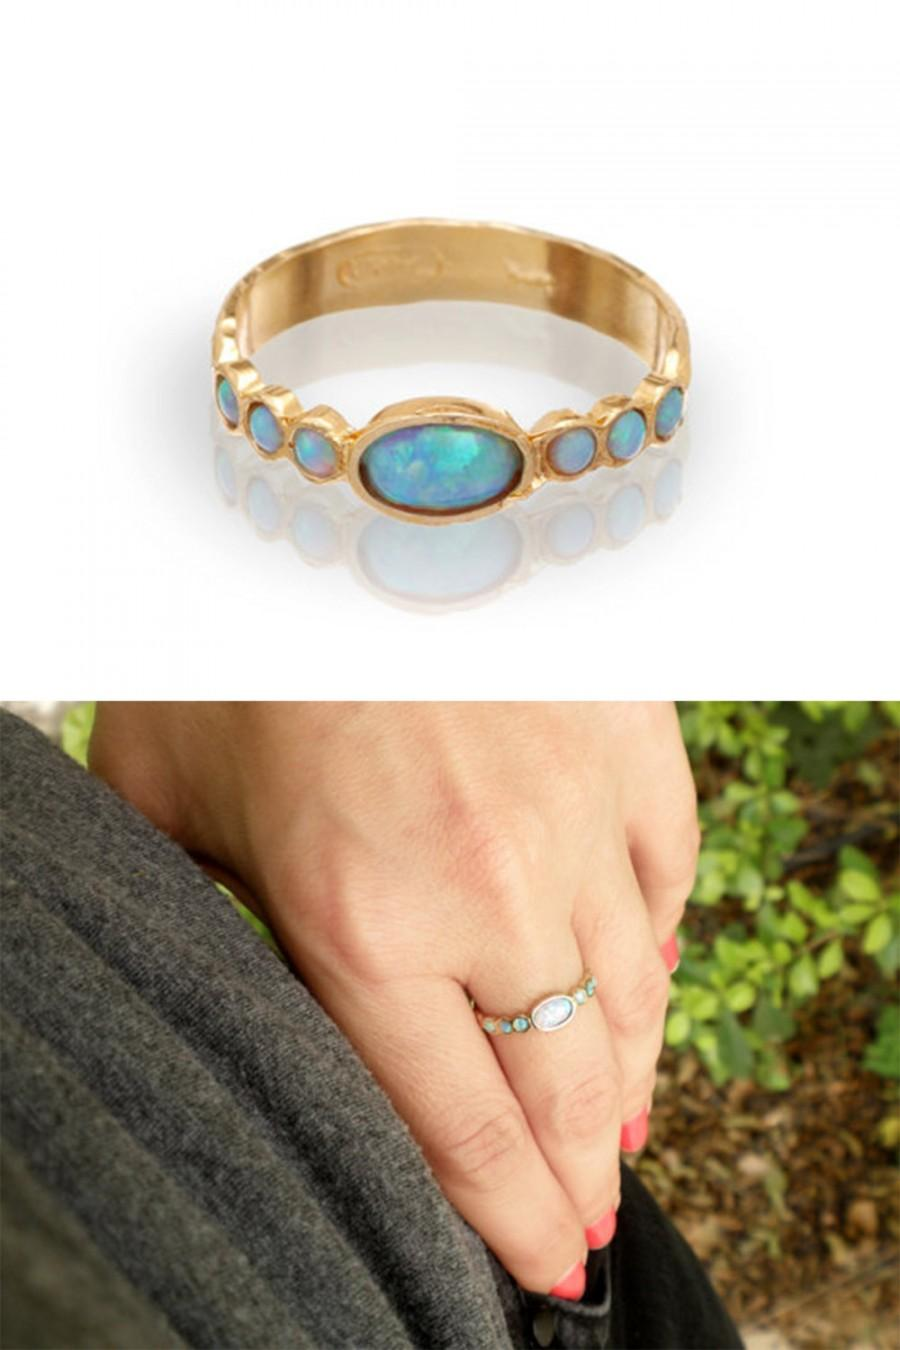 Mariage - Blue Opal - Gold Rings - 14k Yellow Gold plated Over Brass - Gemstone Band Oval Stone-Birthstone Rings - Bezel Rings-Bridesmaid Gift